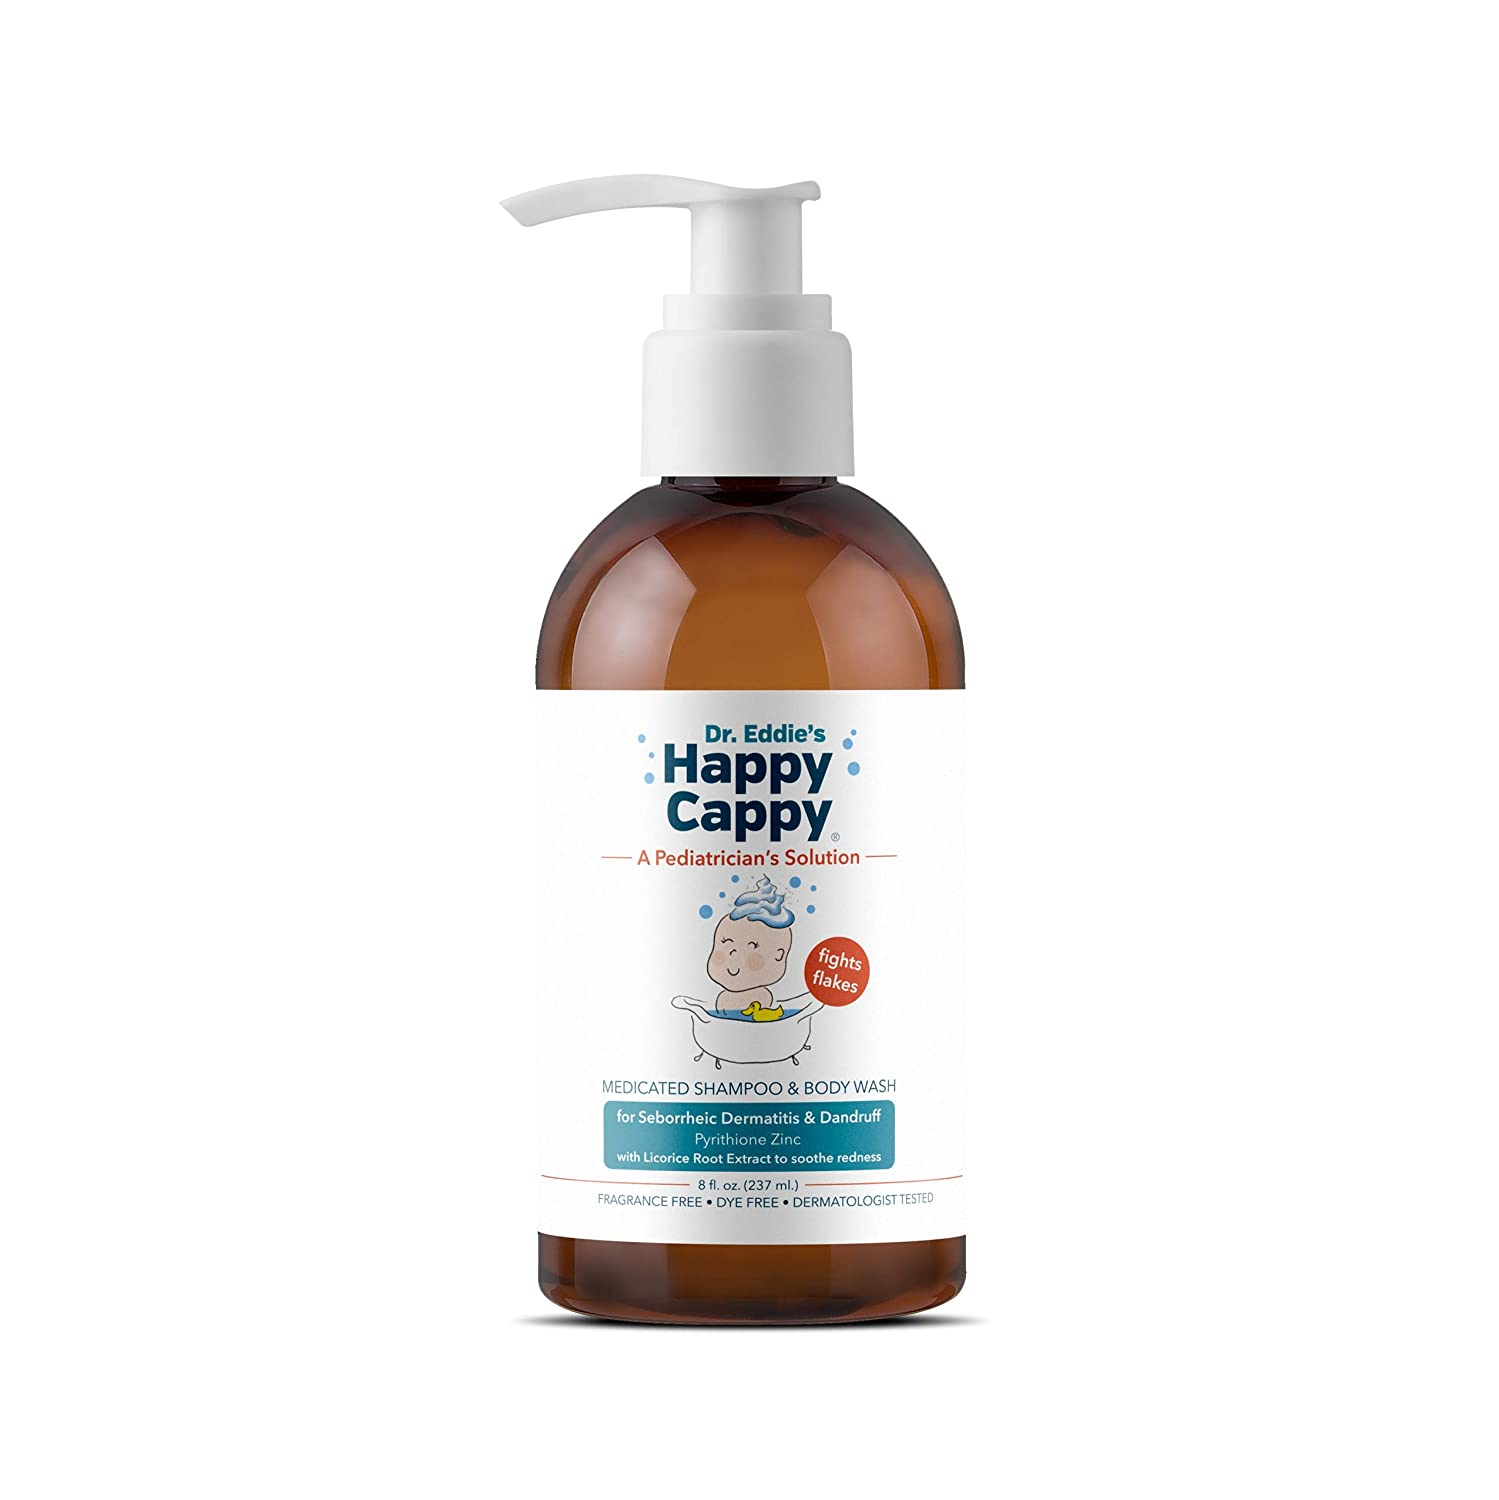 Dr. Eddie's Happy Cappy Medicated Shampoo for Children, Treats Dandruff and Seborrheic Dermatitis